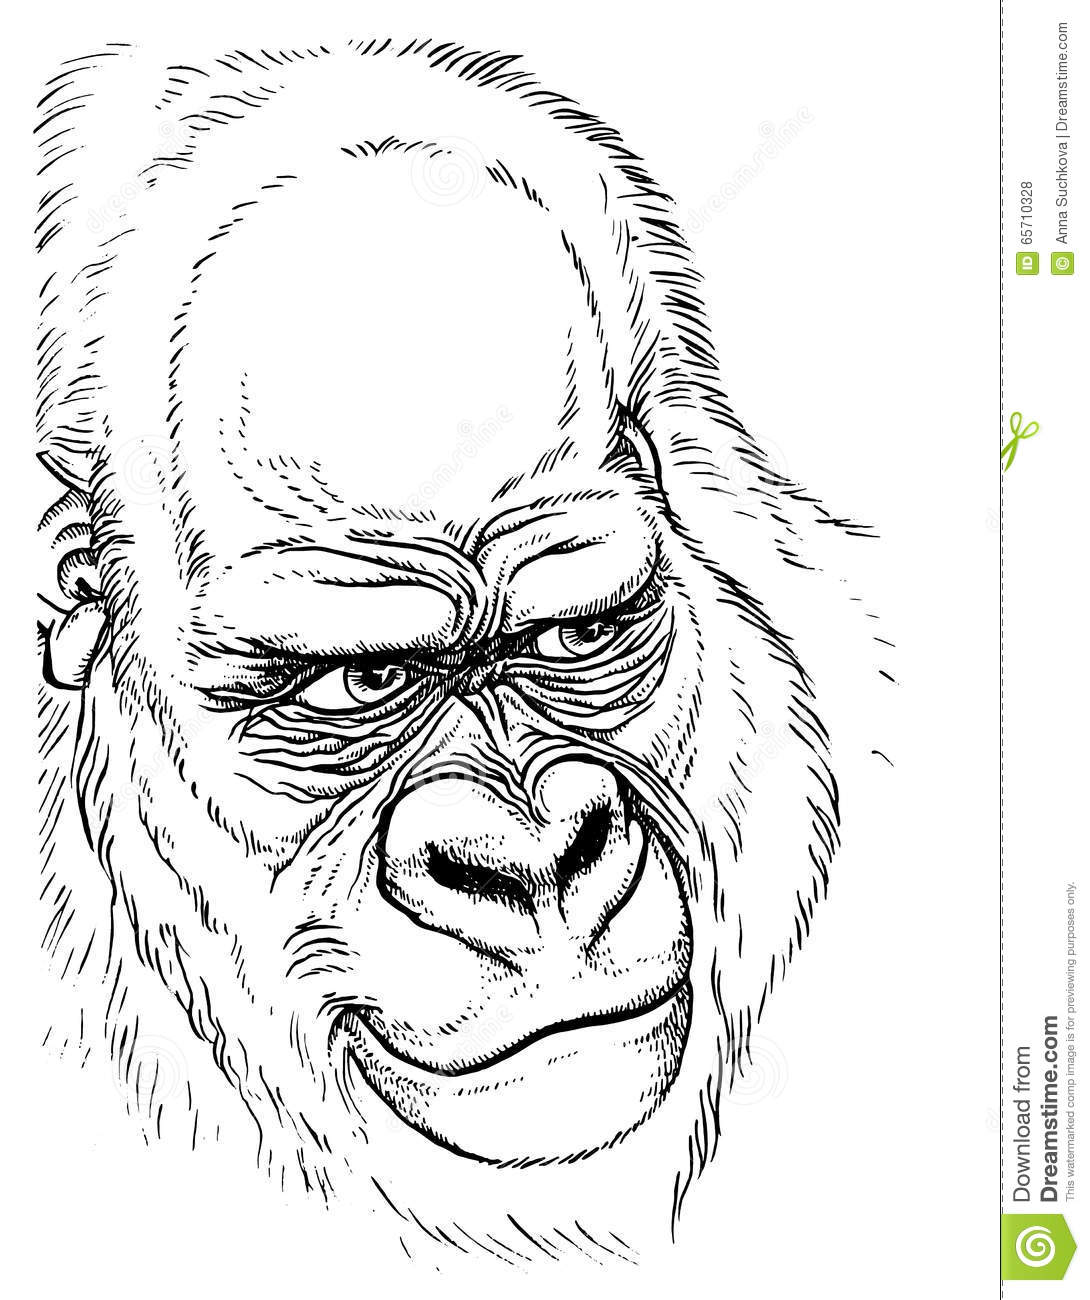 Gorilla Face Line Drawing : Gorilla portrait hand line drawing stock vector image